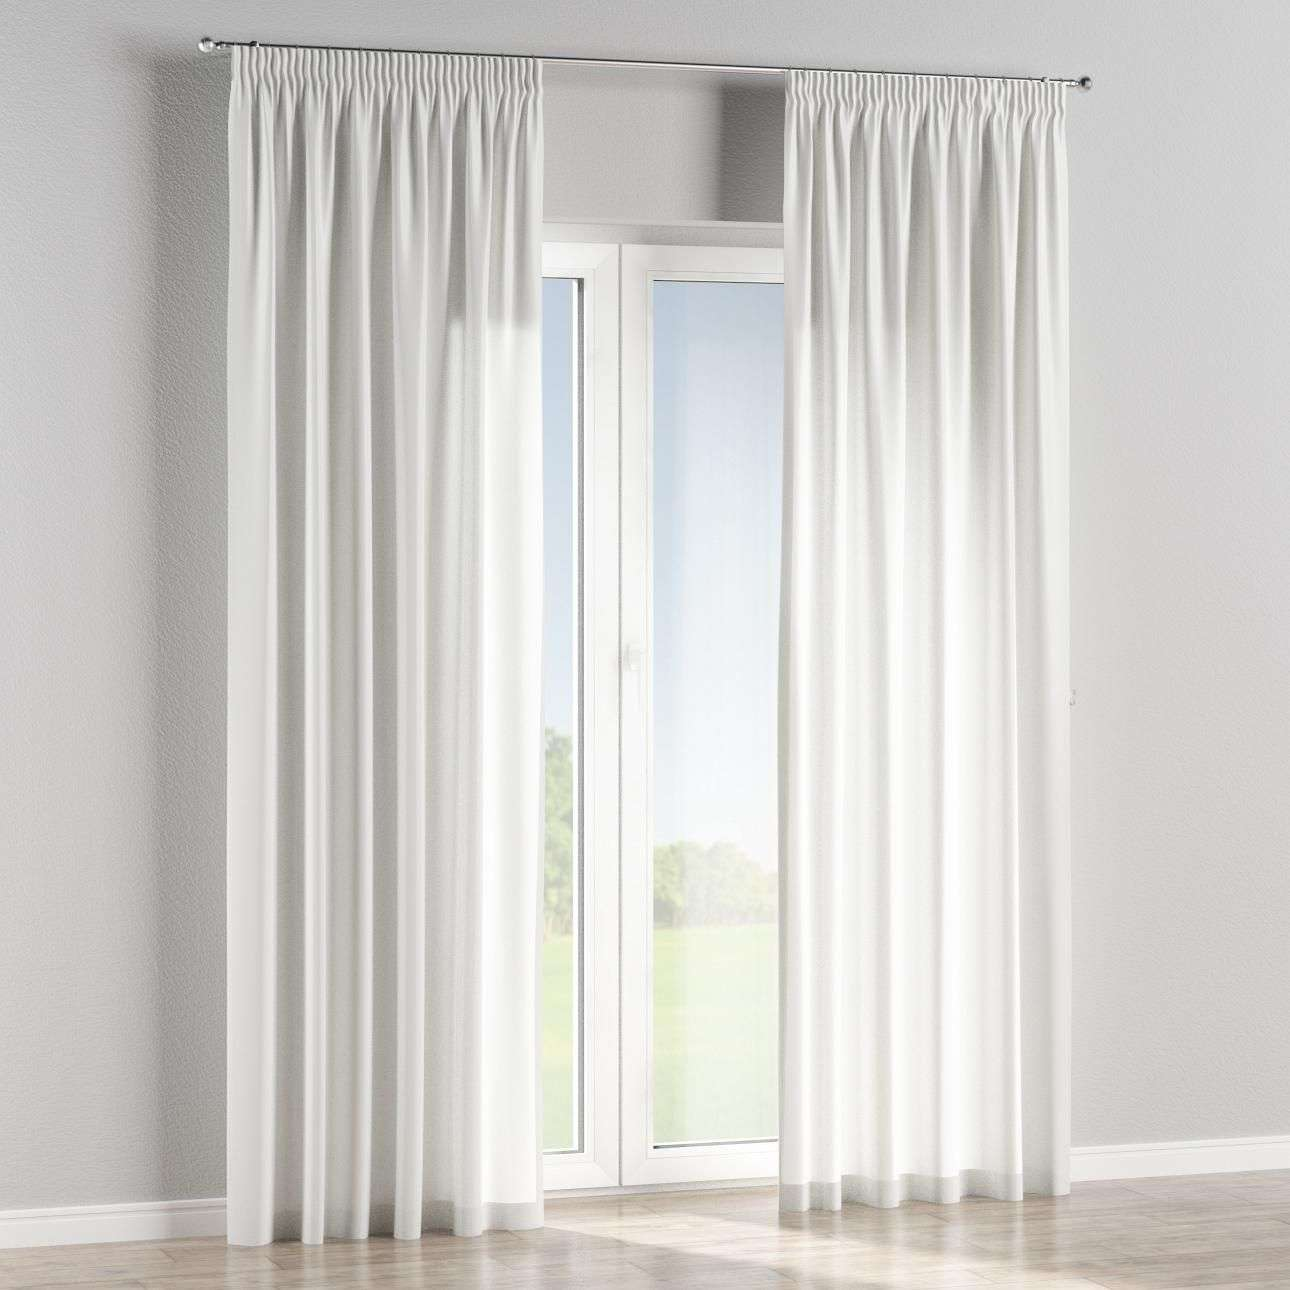 Pencil pleat curtains in collection Aquarelle, fabric: 140-68